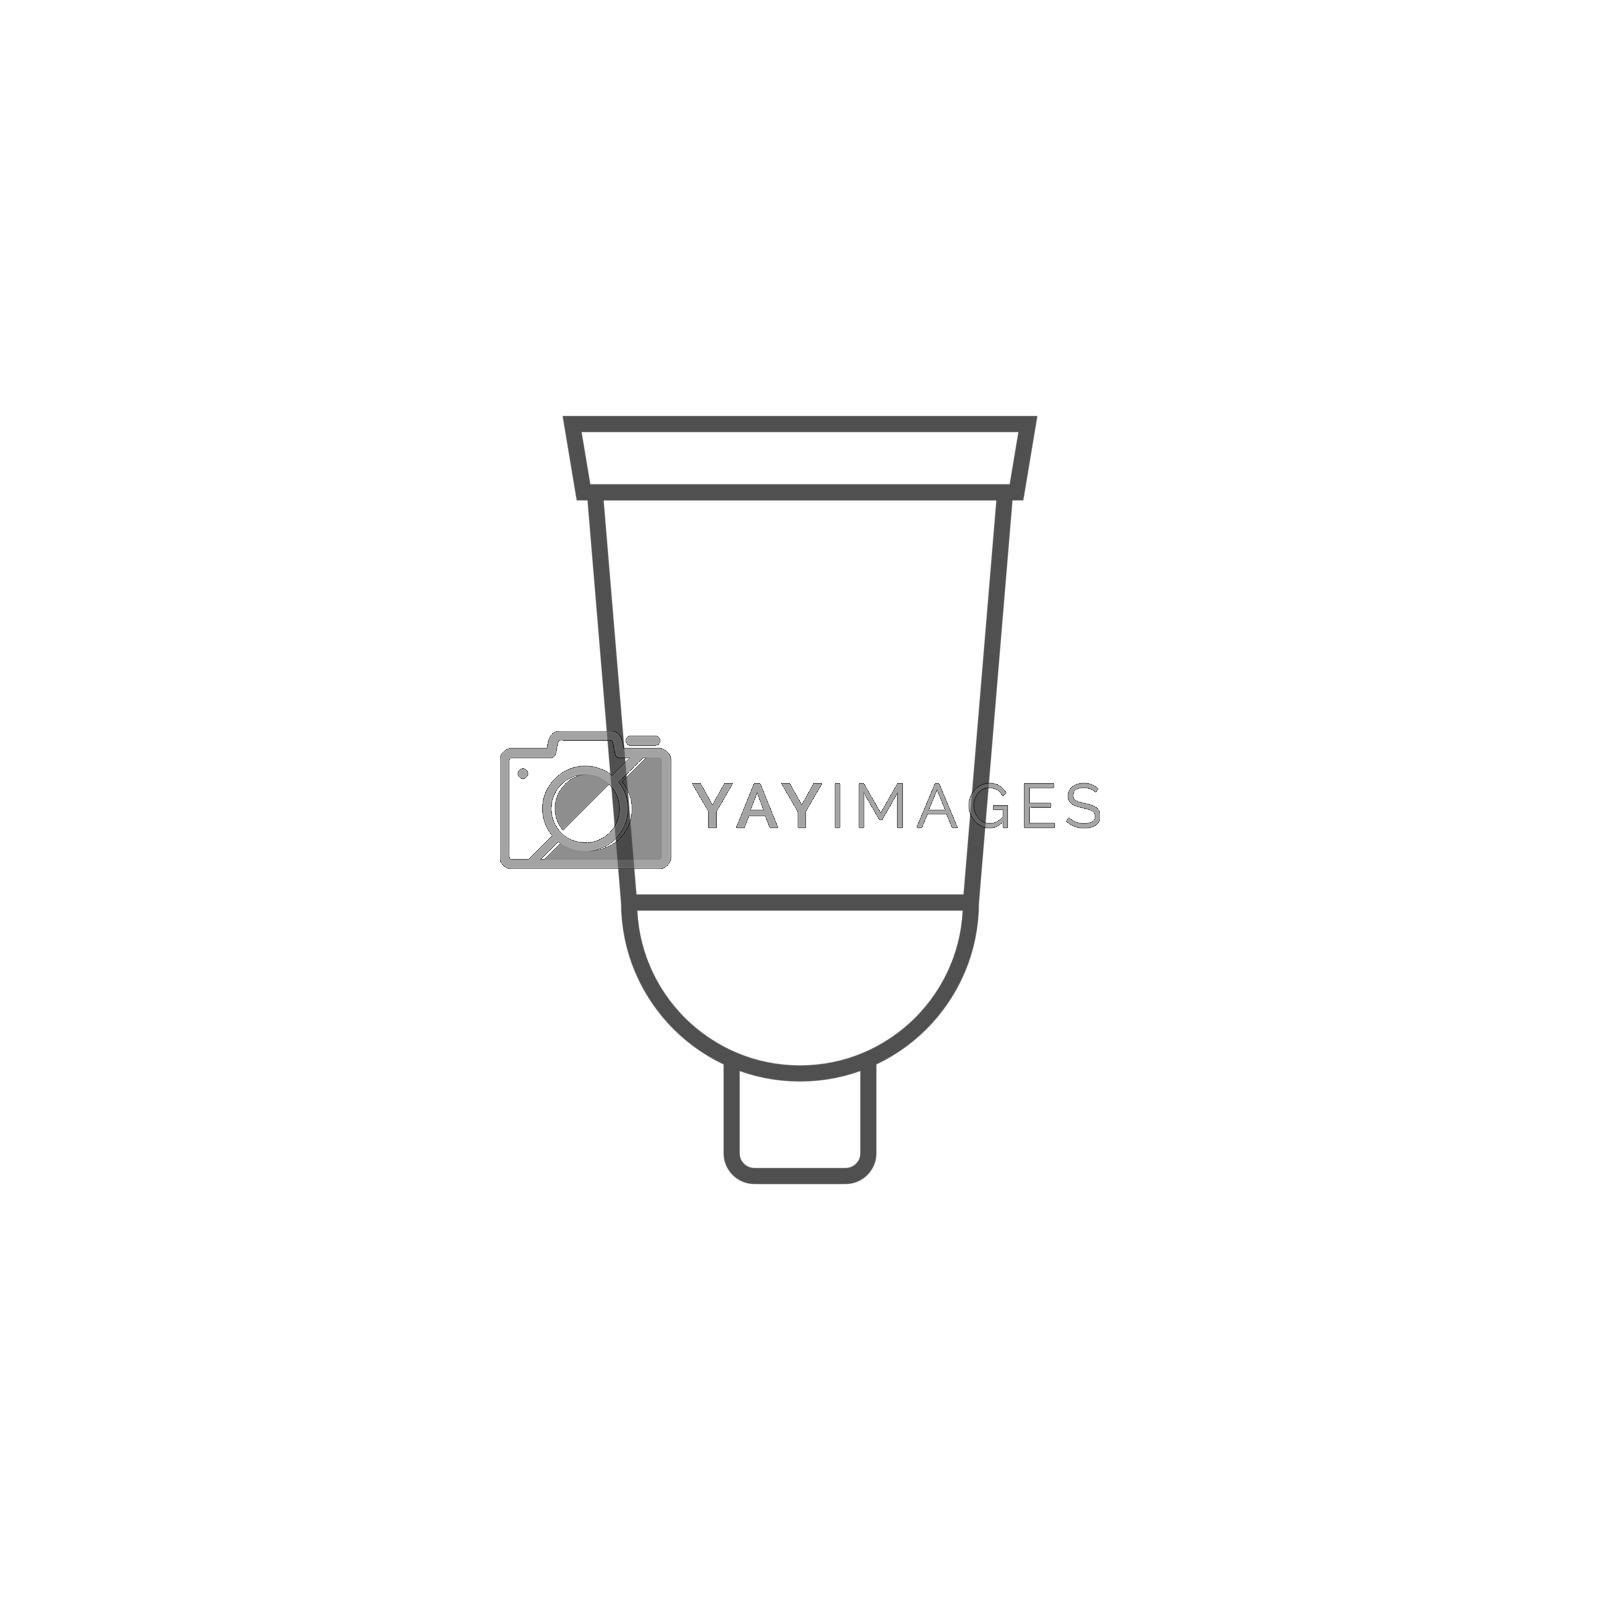 Cream Tube Related Vector Line Icon. Drugs. Isolated on White Background. Editable Stroke.